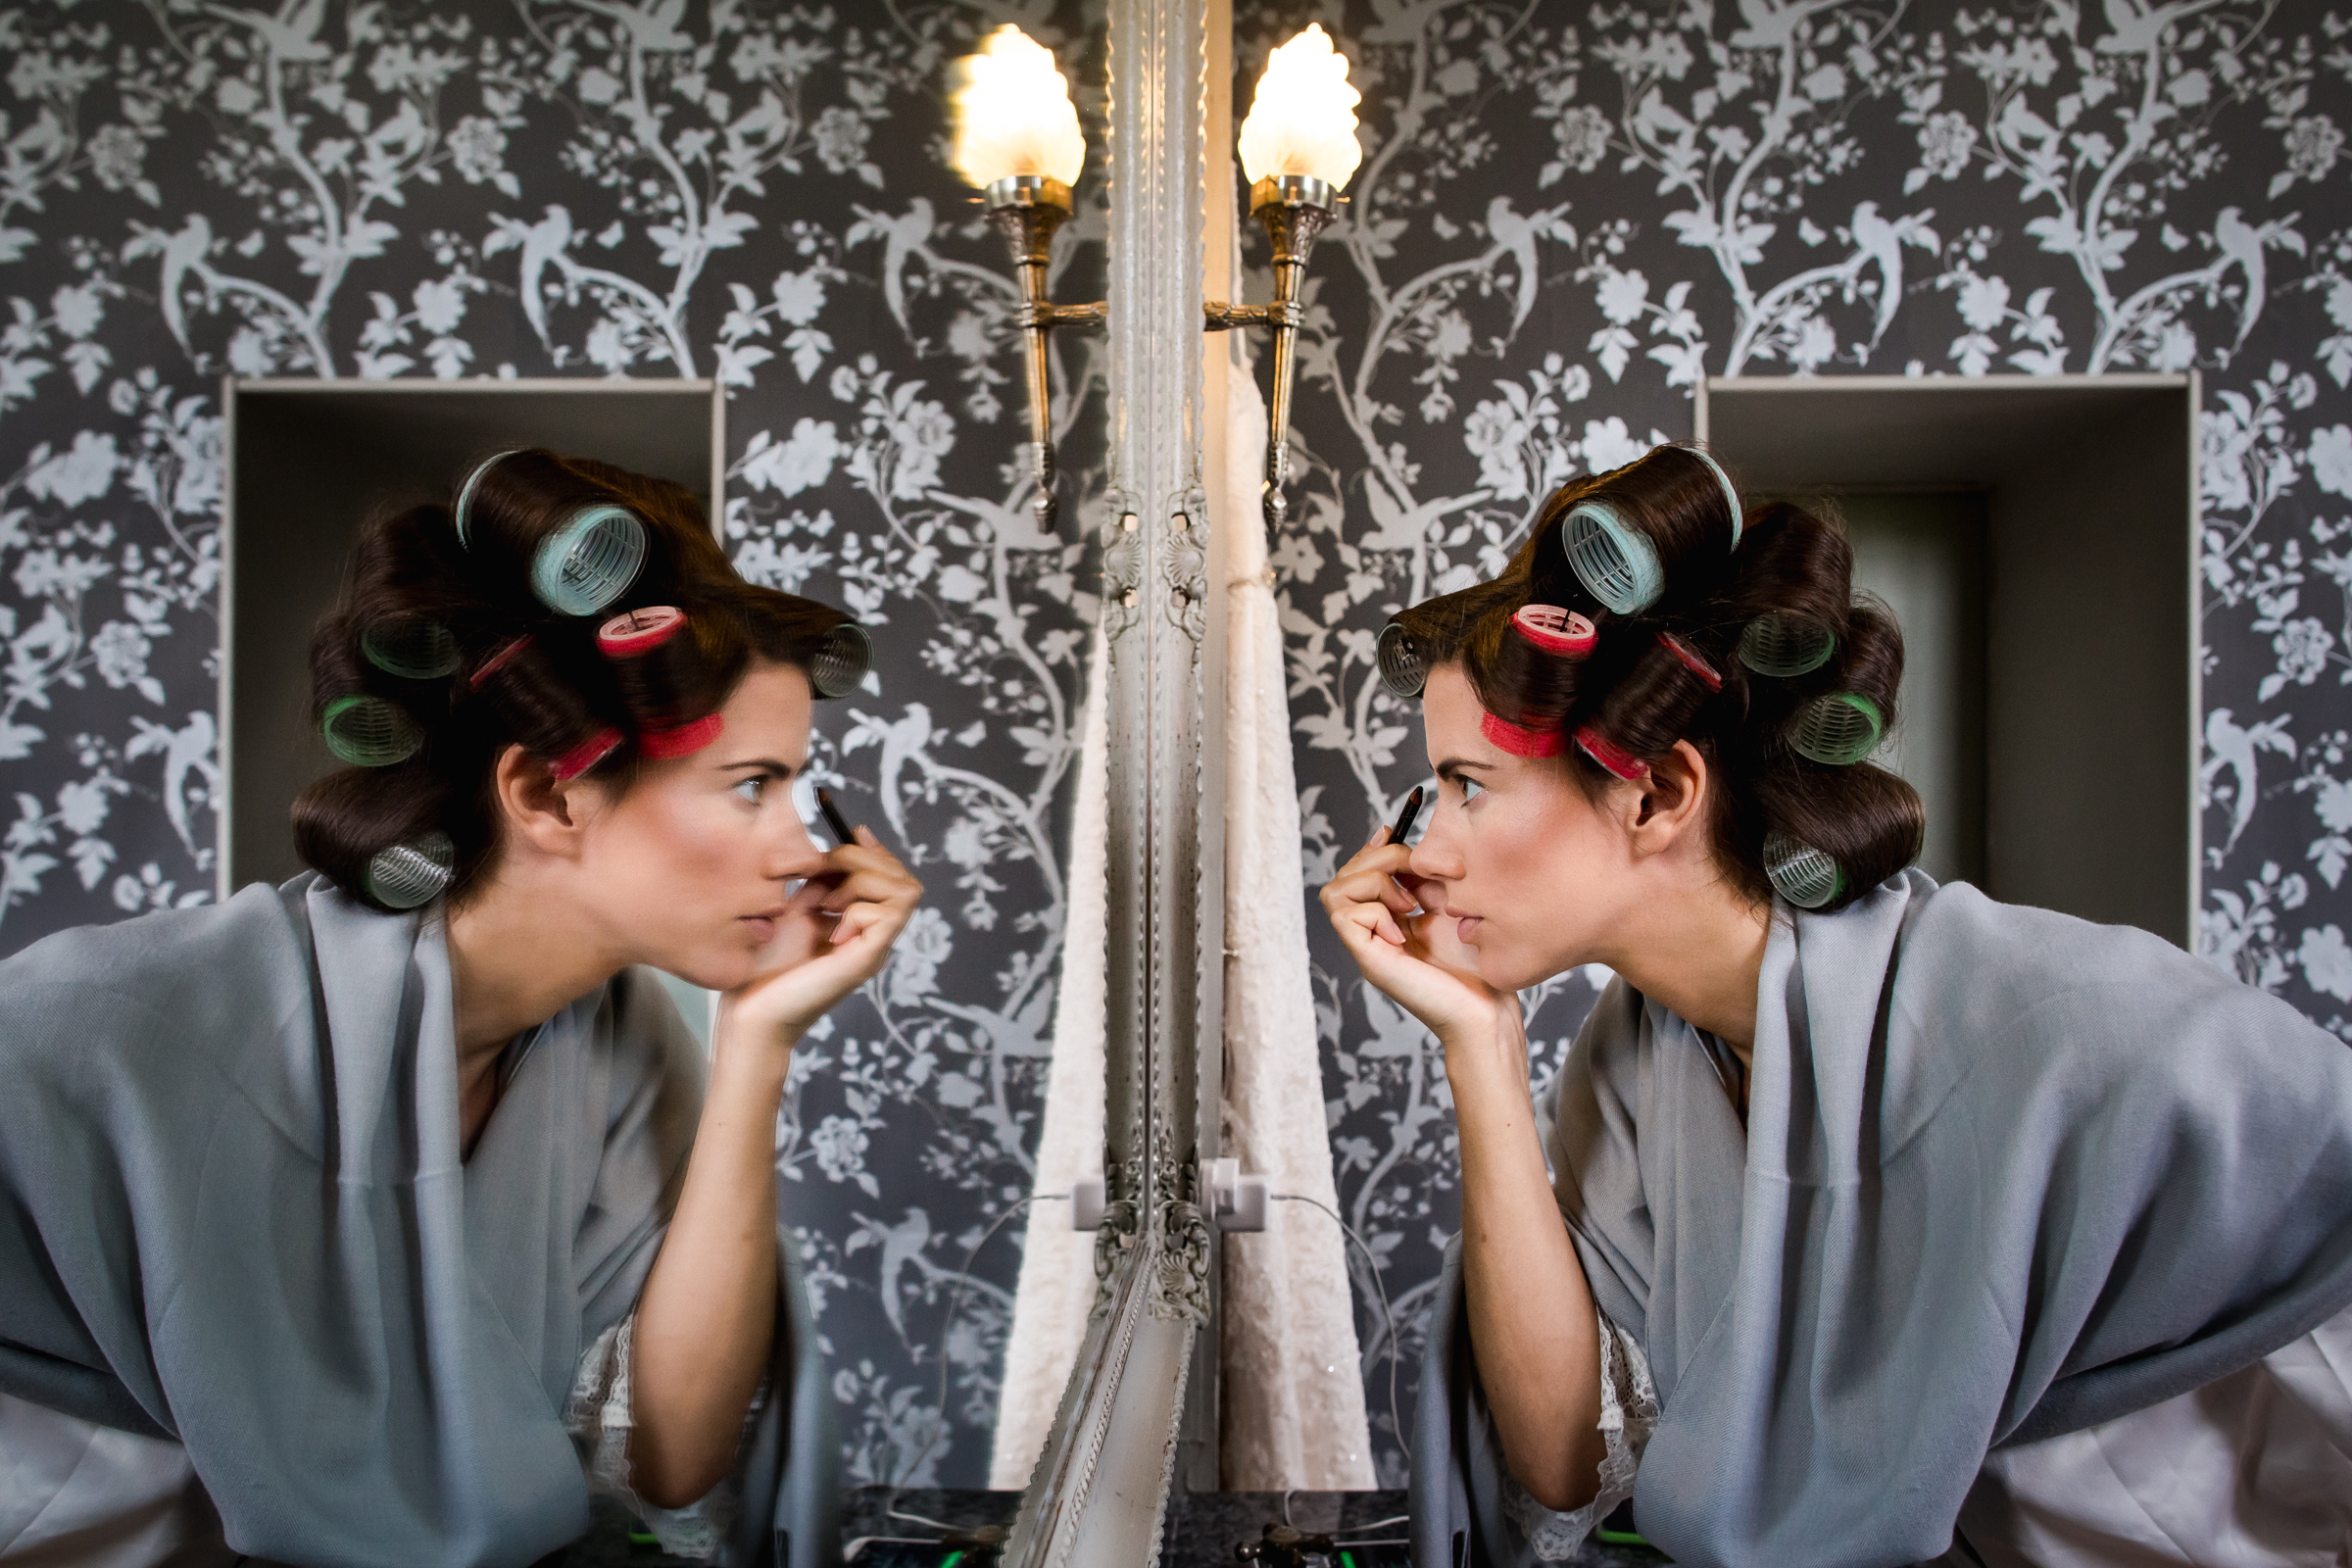 Reflection of bride getting ready in curlers - photographed by William Lambelet - Montpellier